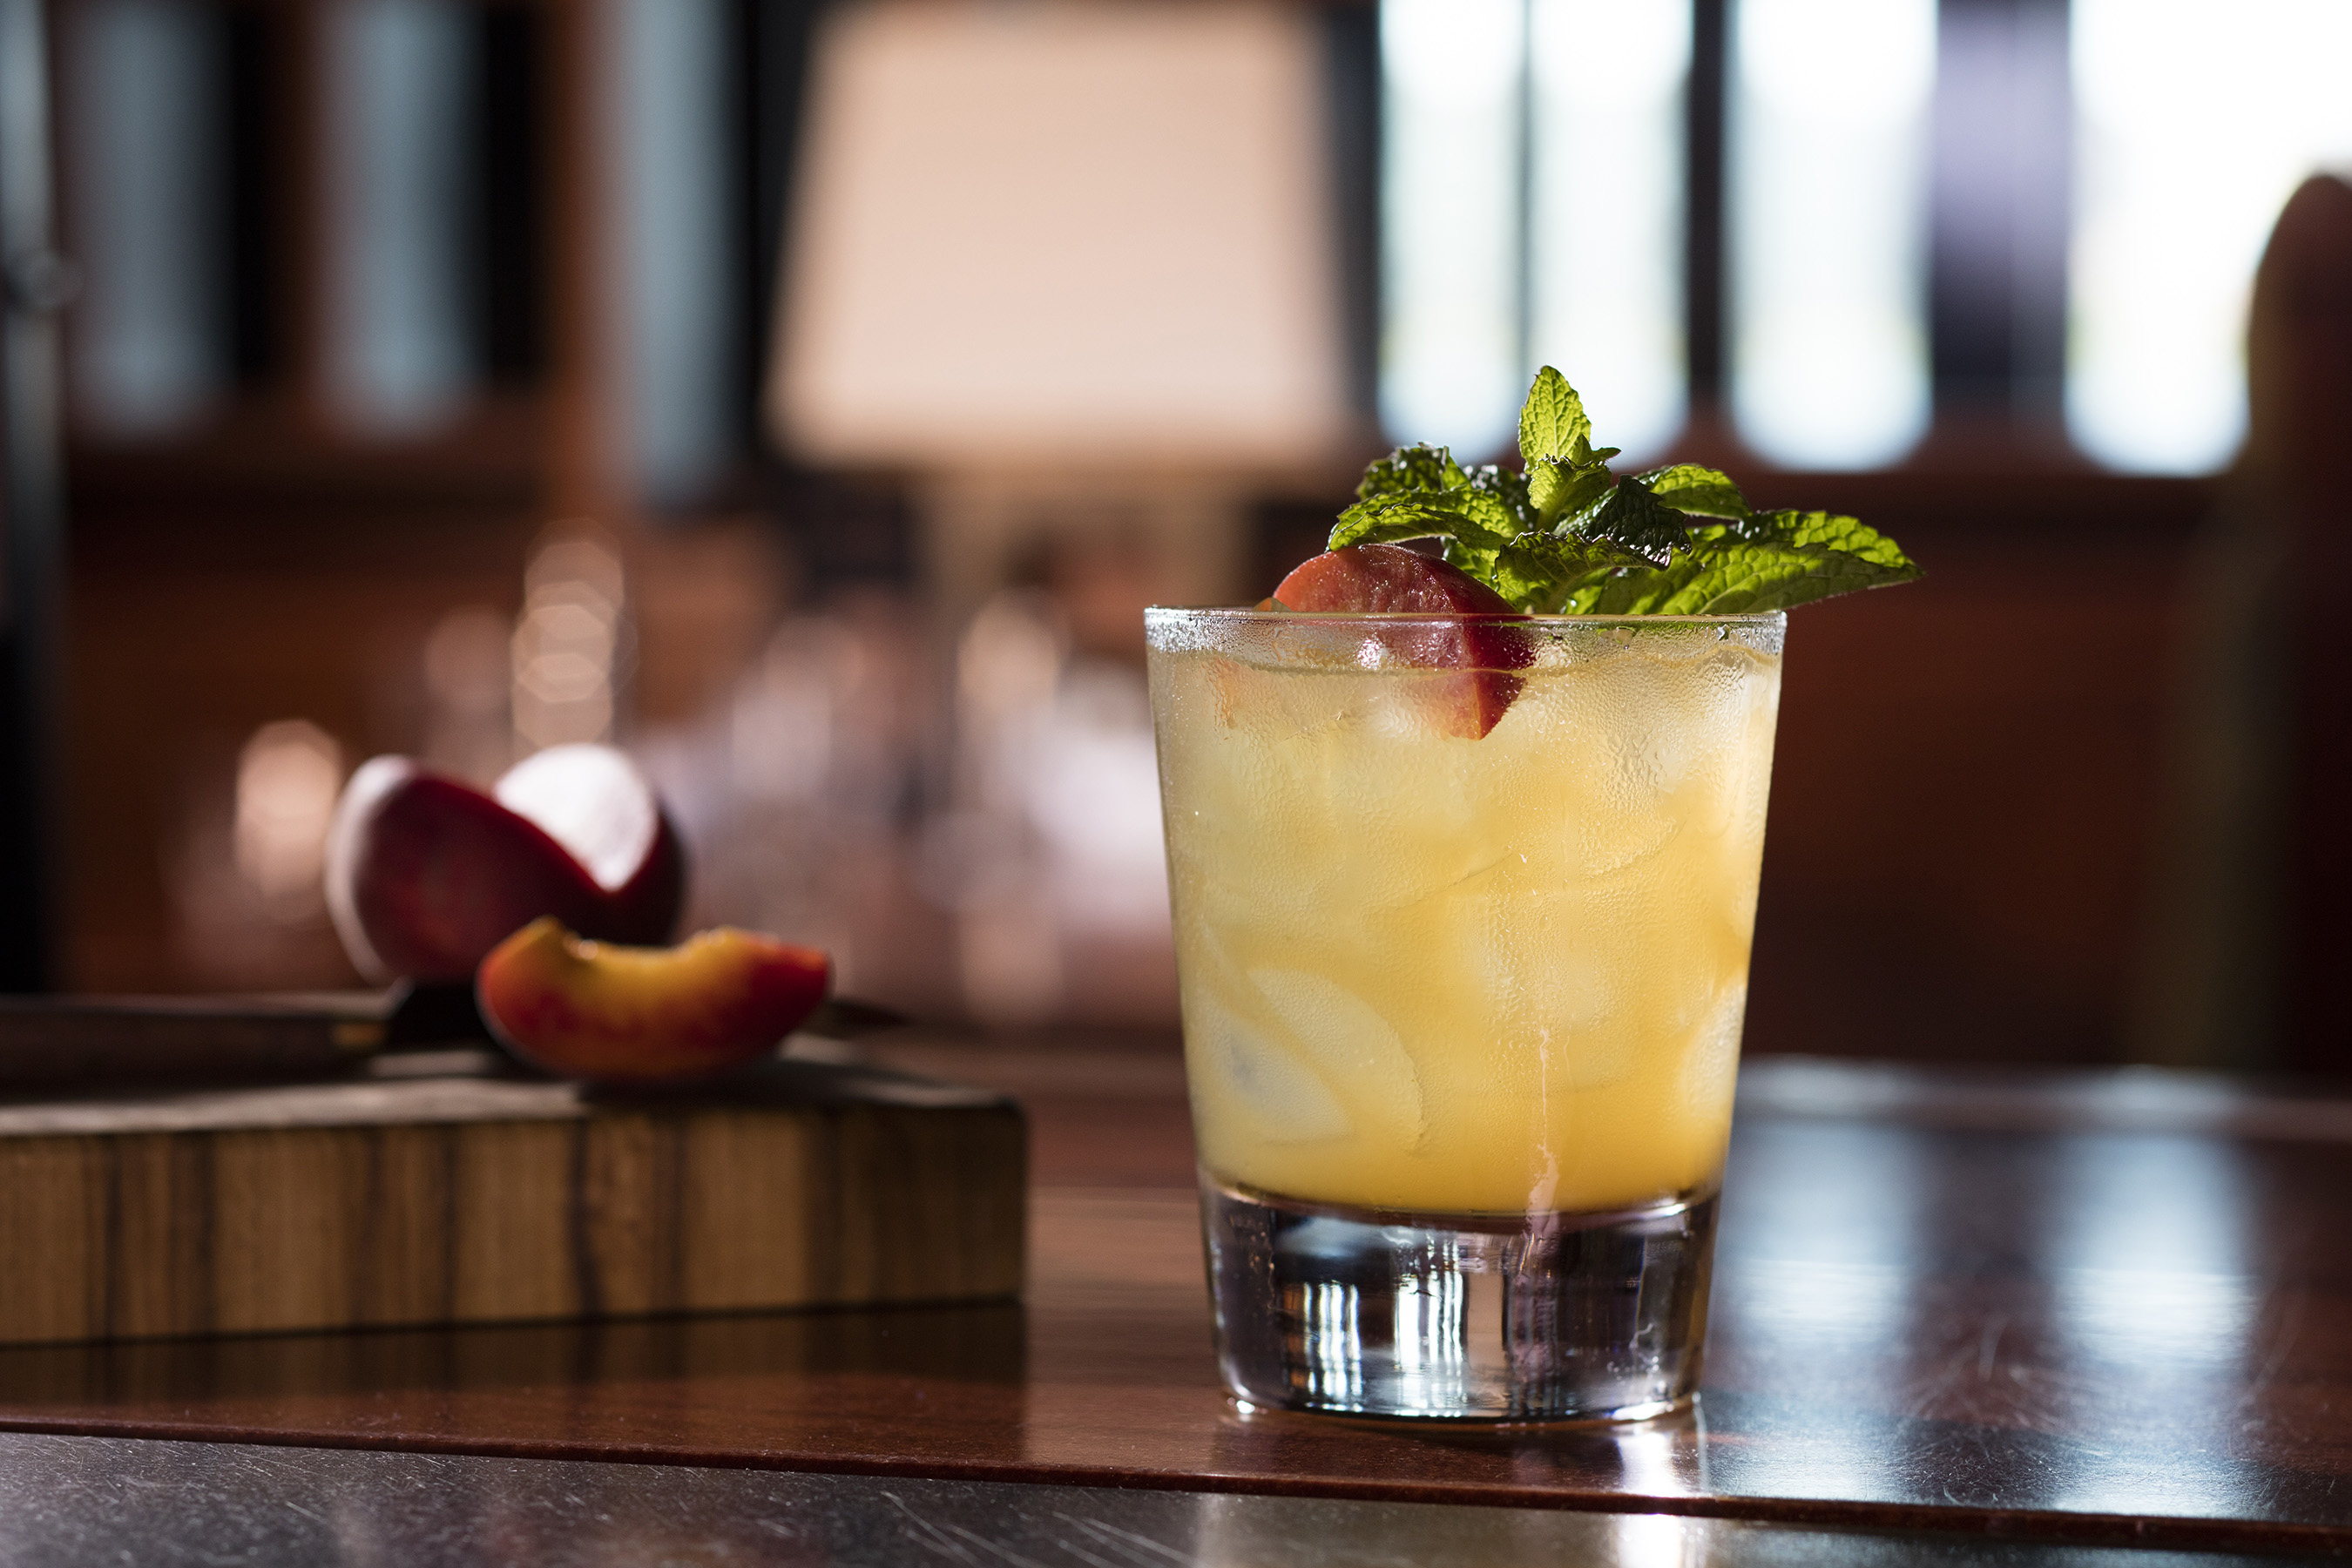 Bourbon Peach Smash: Flavors of sun-drenched peaches and cool mint compliment the trademark sweetness of Maker's Mark Bourbon in this refreshing handcrafted summer cocktail.